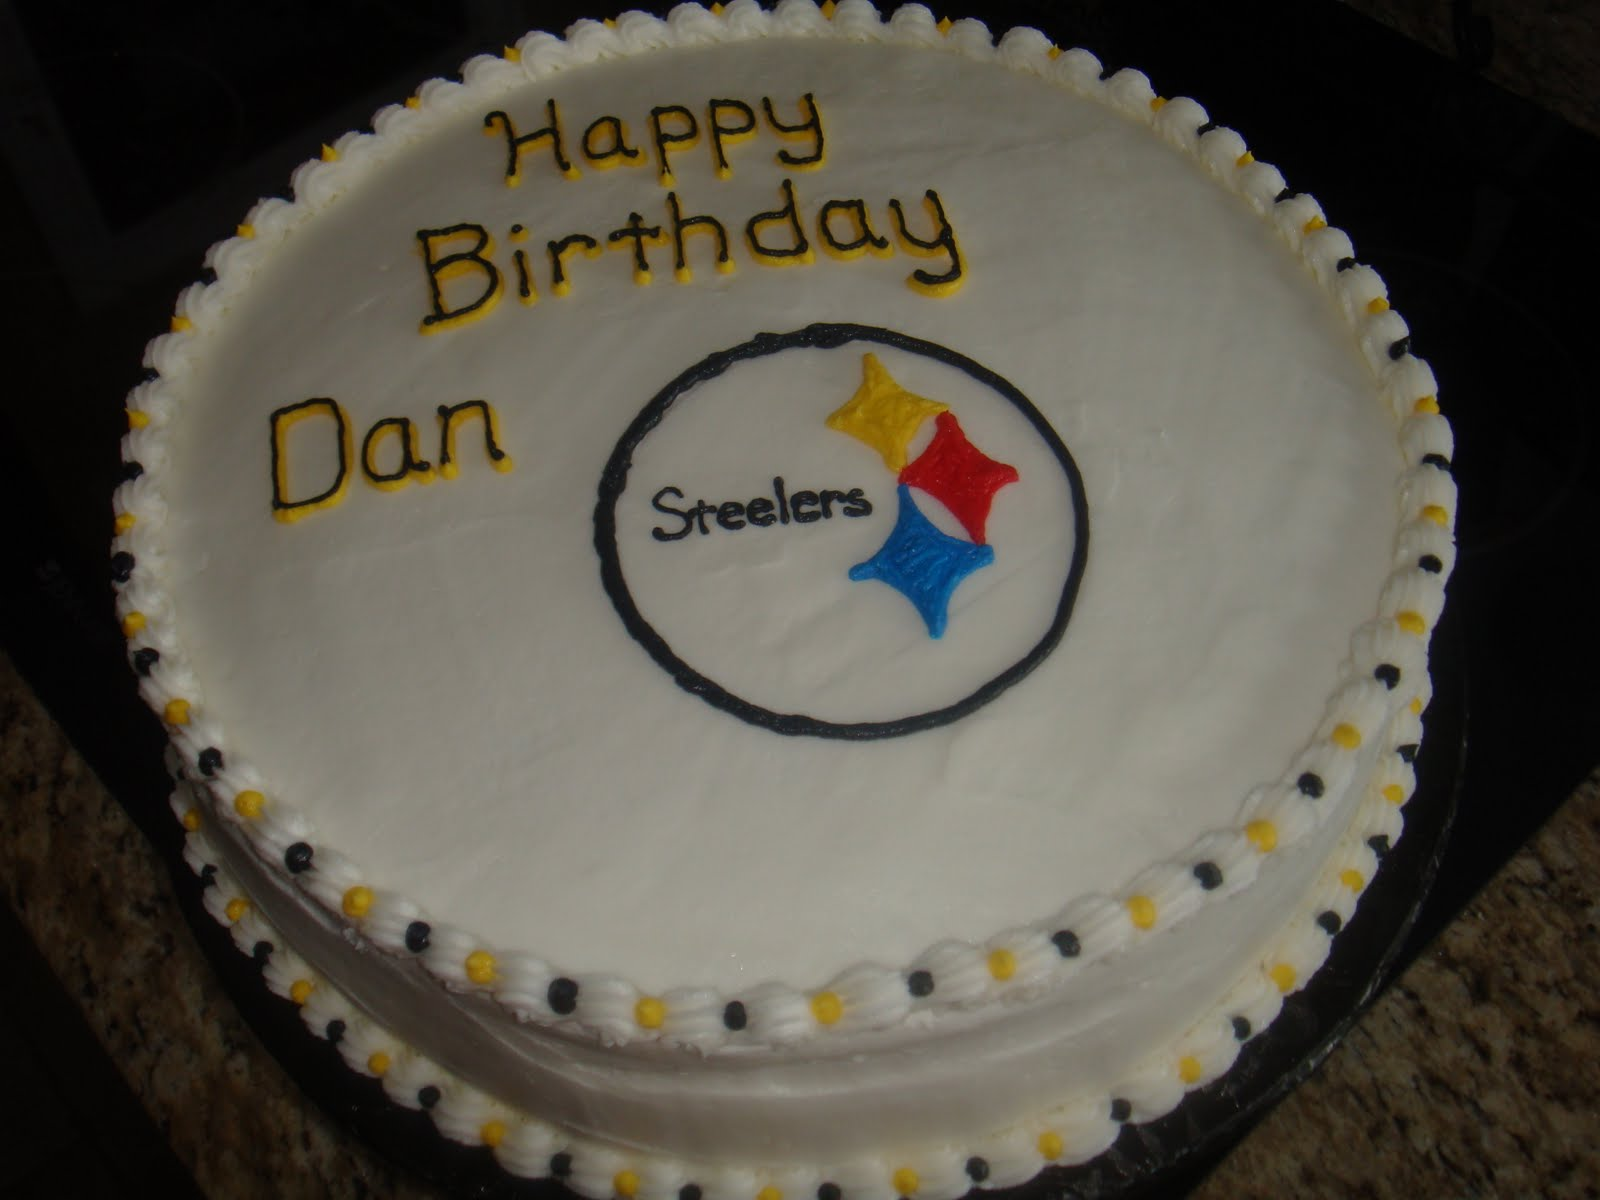 Vickis Sweet Treats Dans Pittsburgh Steelers Cake